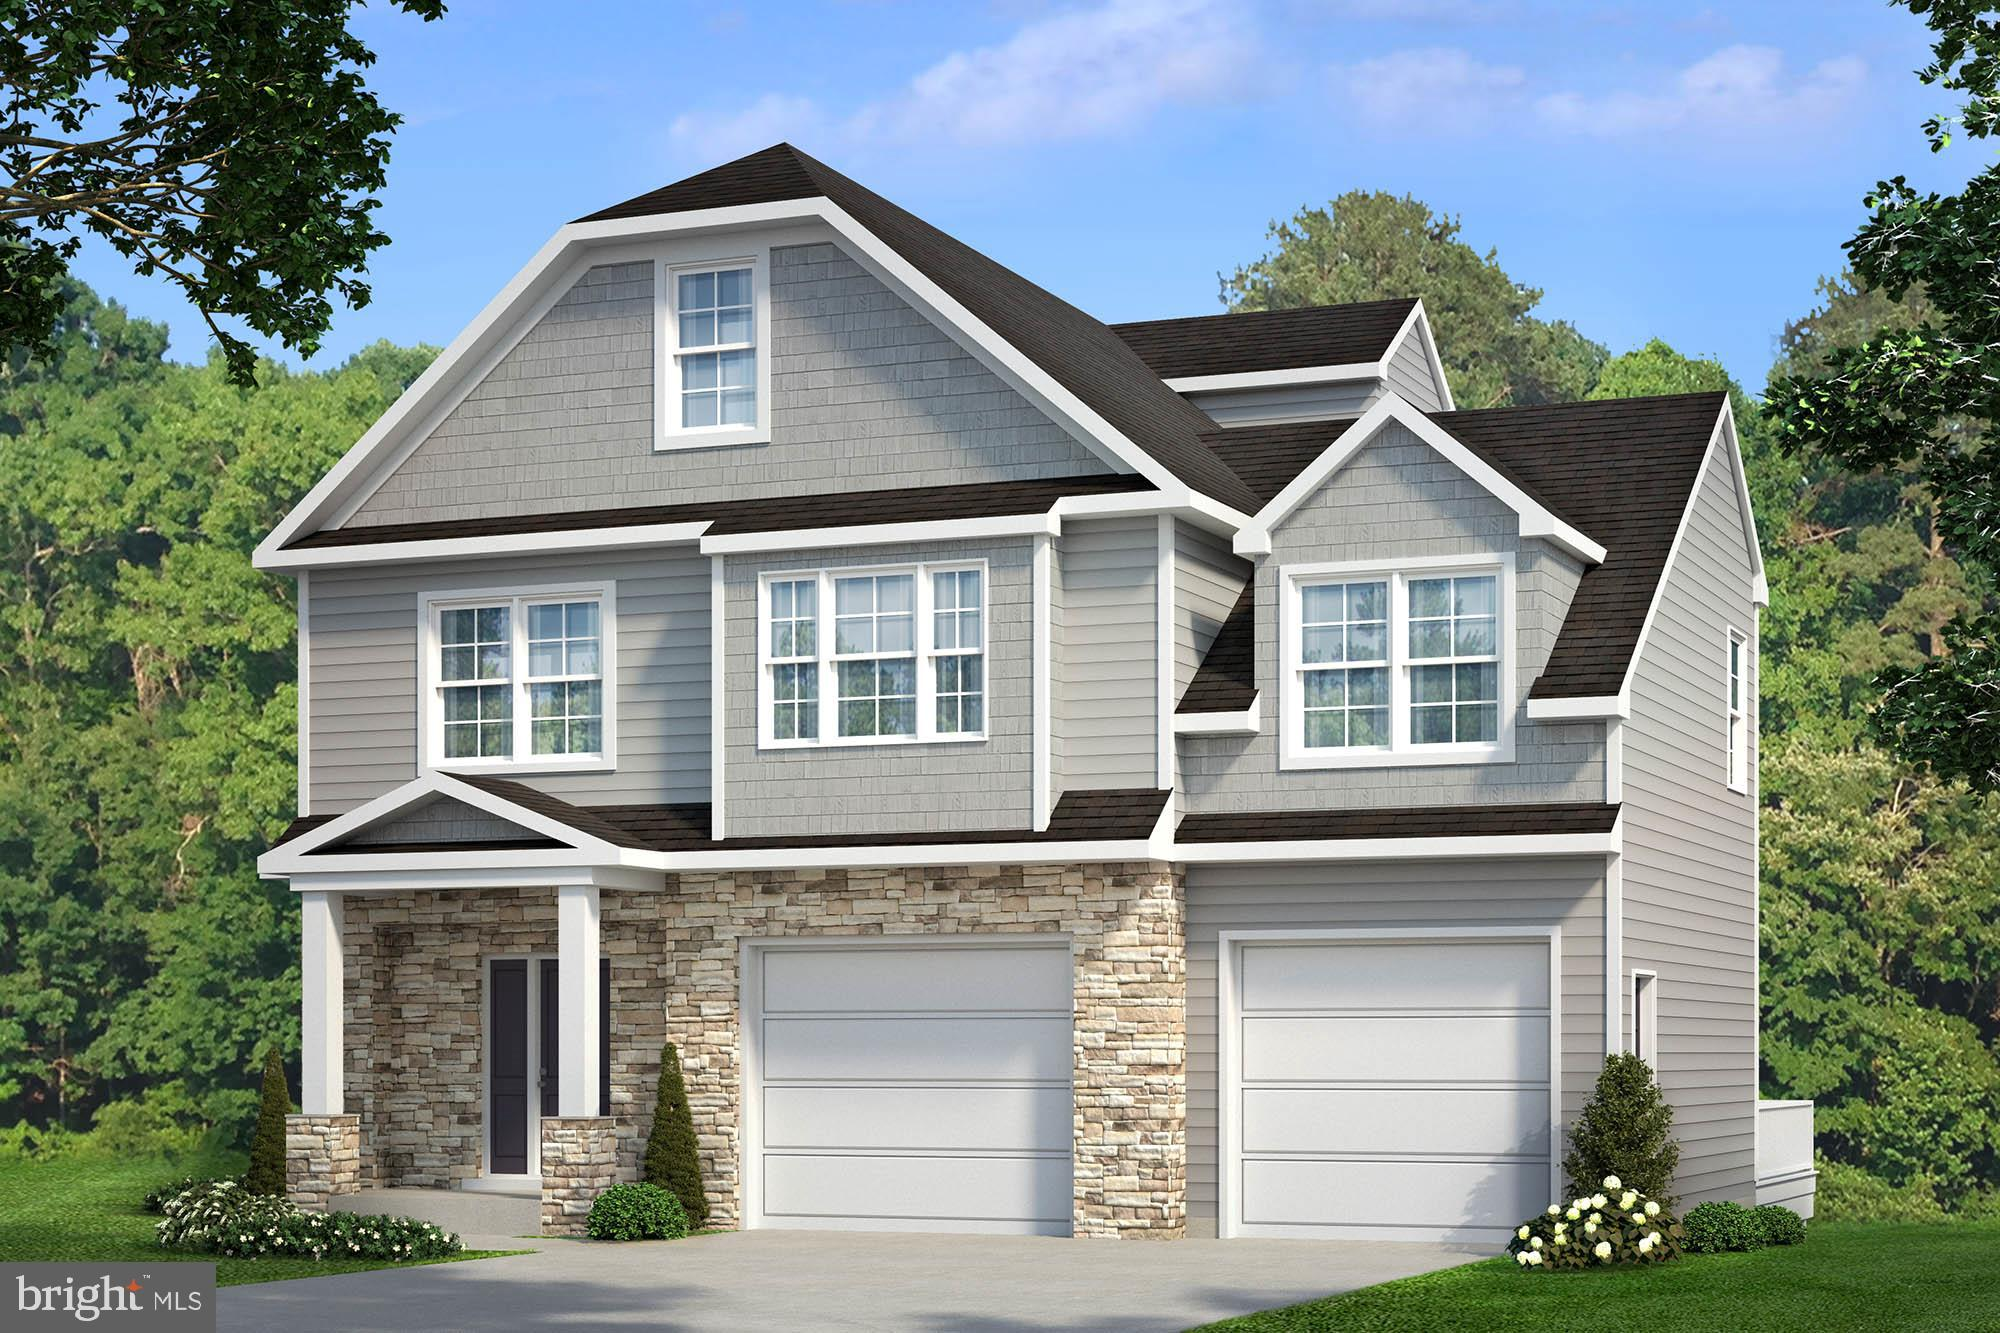 Lot 1A HALLOWELL ROAD, PLYMOUTH MEETING, PA 19462